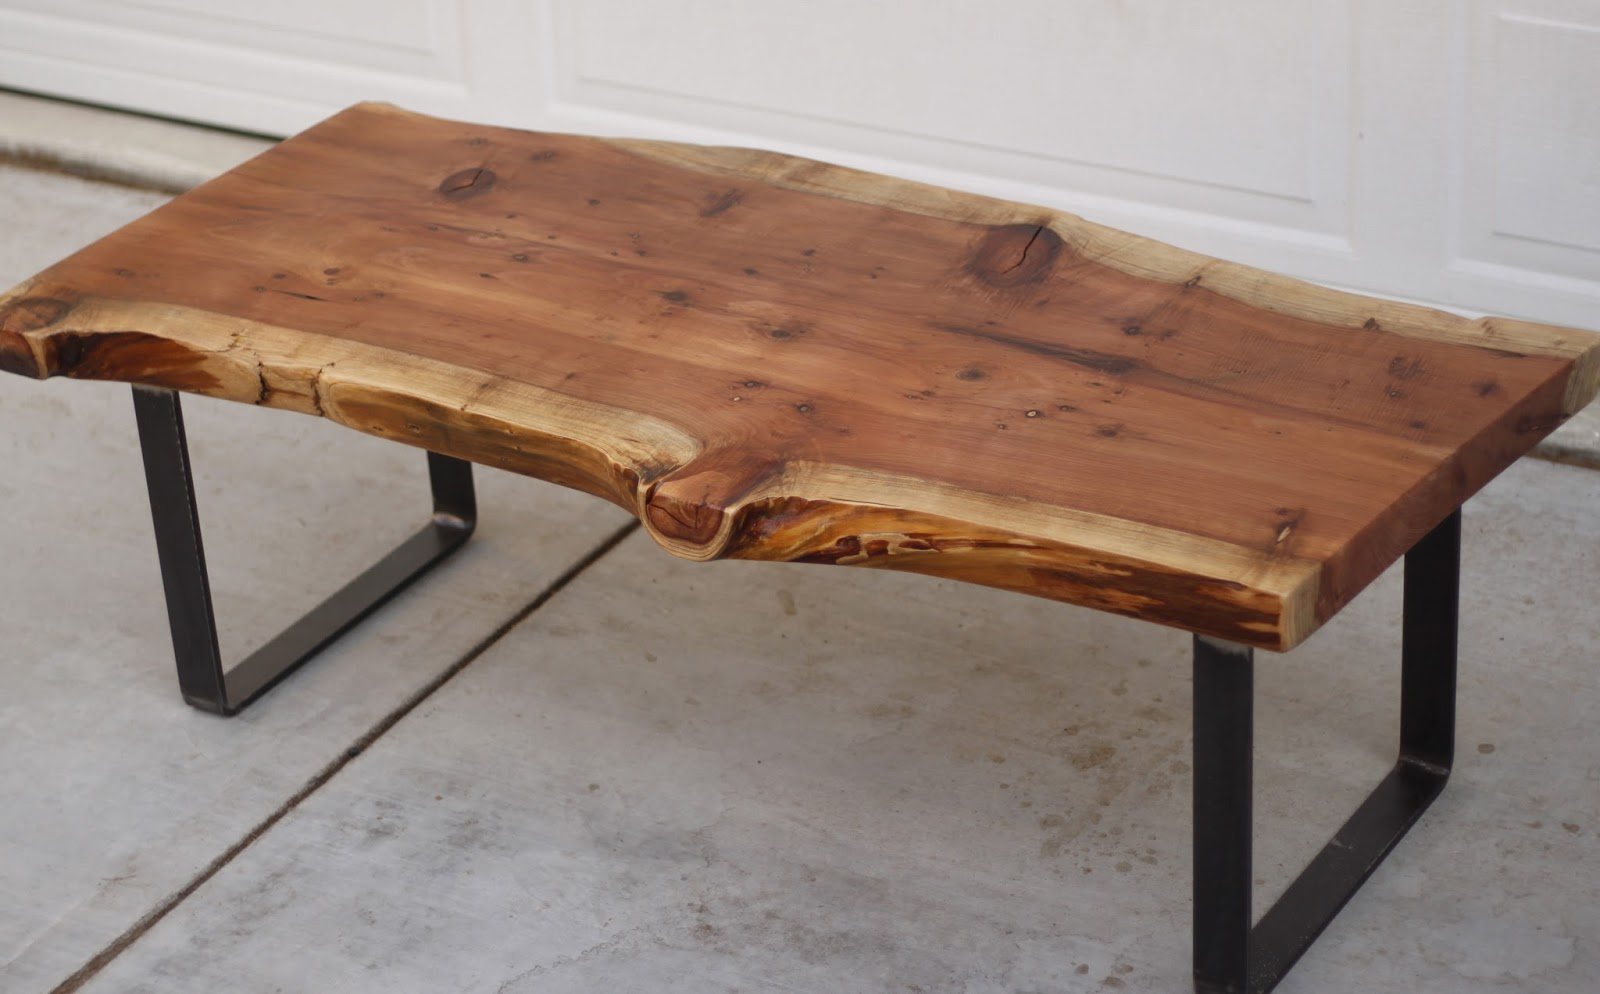 Wood slab furniture at the galleria for Wood slab coffee table